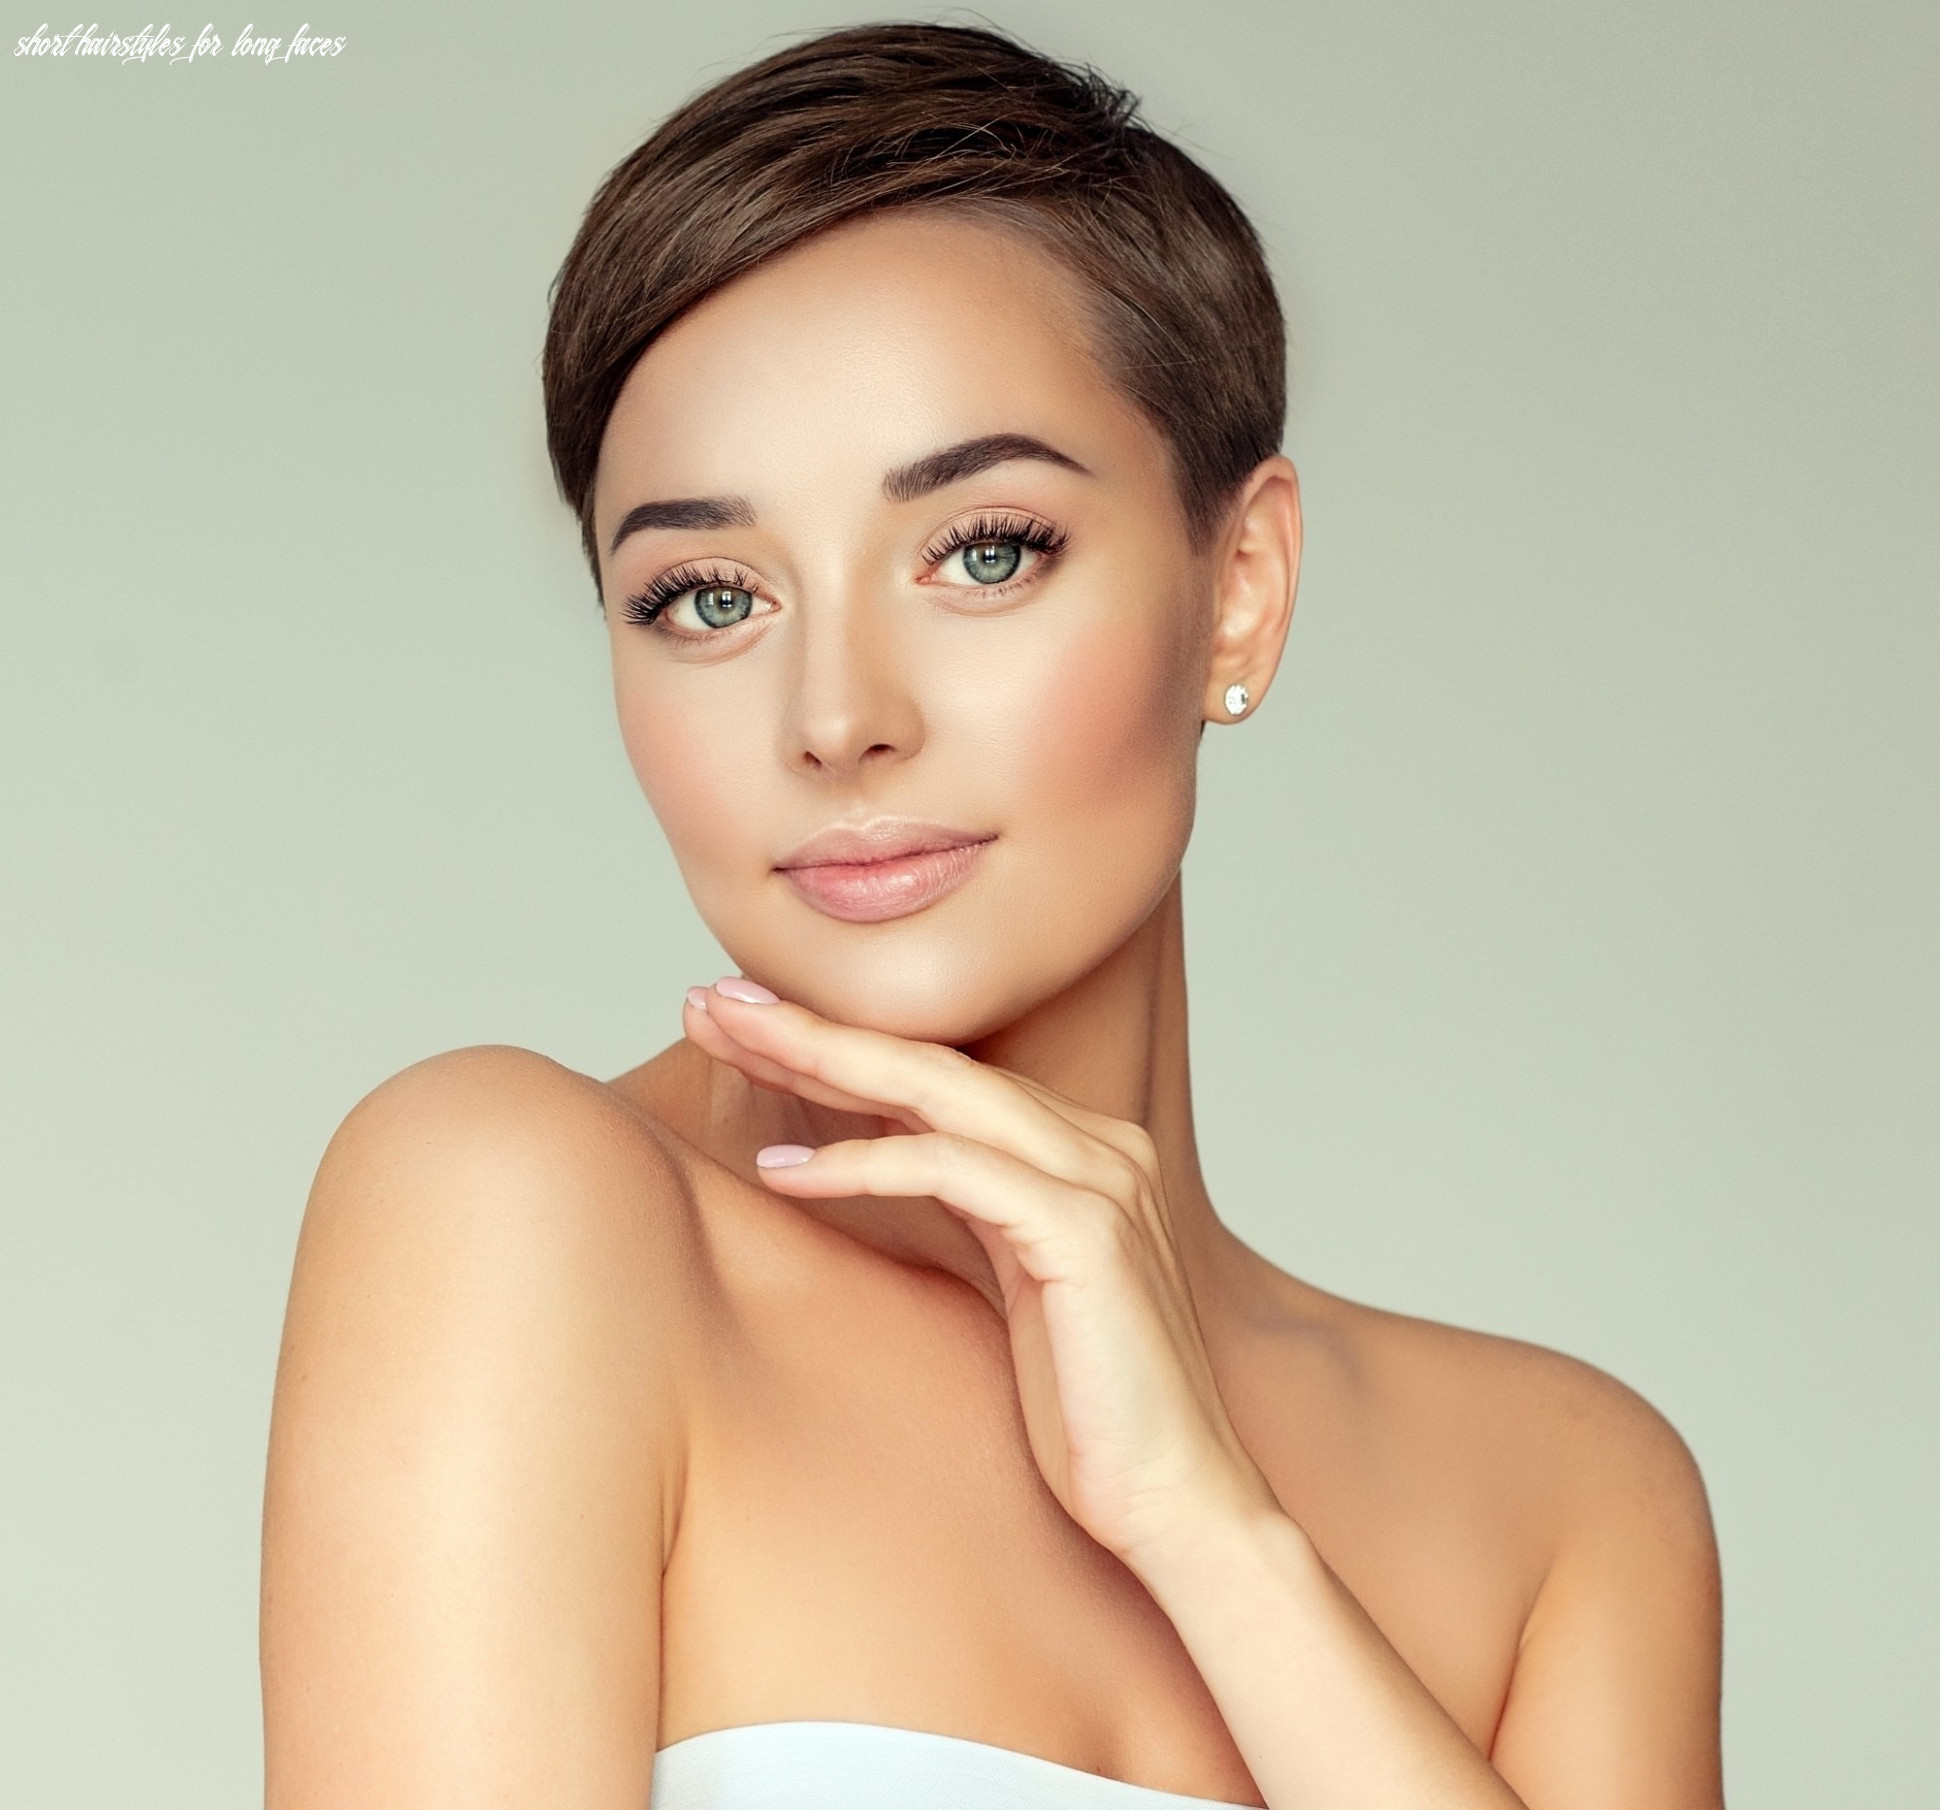 Short hairstyles for long faces that you should do short hairstyles for long faces